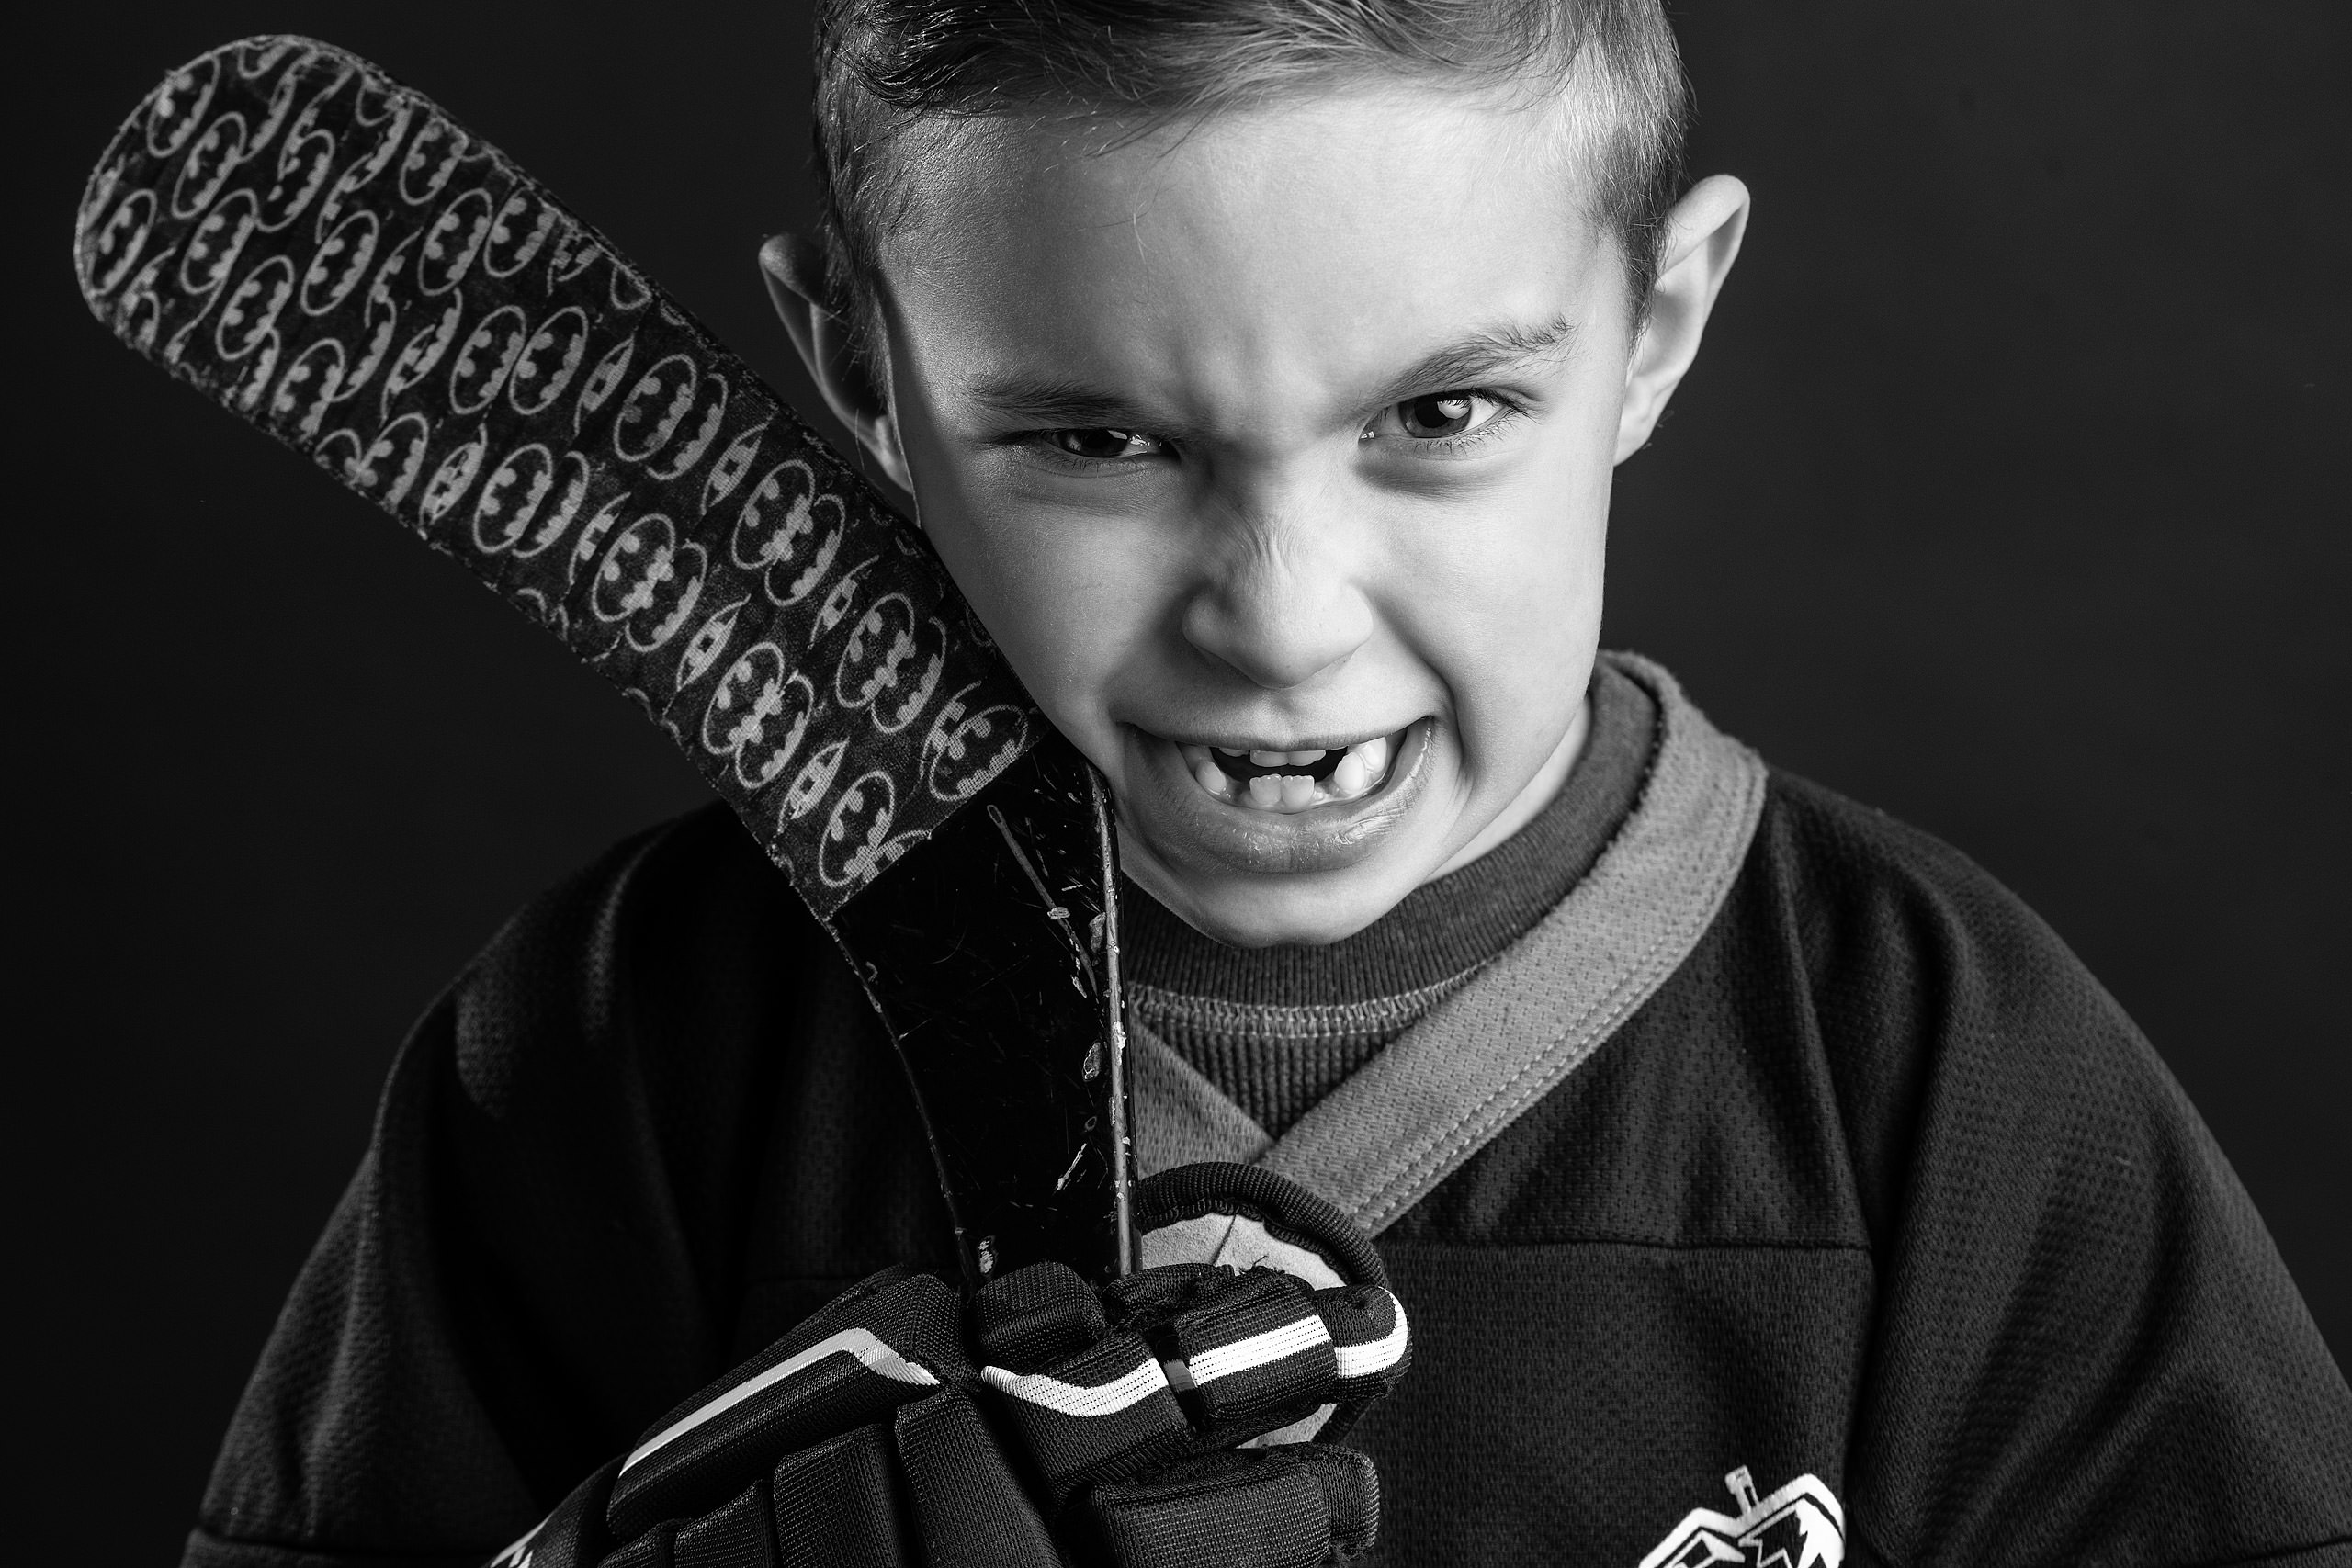 young both making a mean face with his hockey stick taken by family photographer sean leblanc